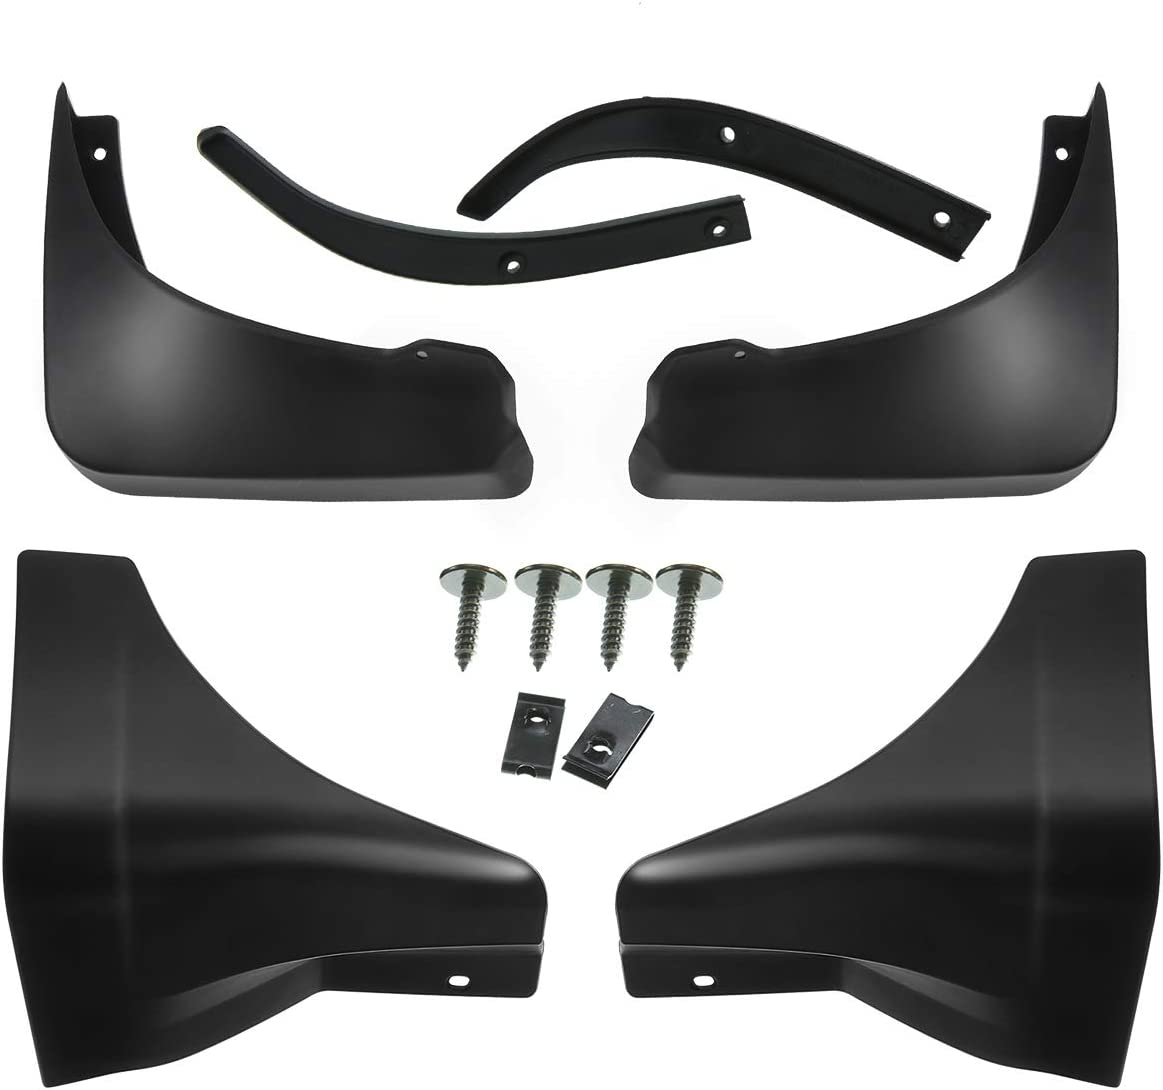 Will not fit 4dr Sedan // Use measurement to make sure it fits your car GTSpeed Made for 03-06 Infiniti G35 2dr Coupe ONLY JDM Rear PU Bumper Lip Mud Splash Guards